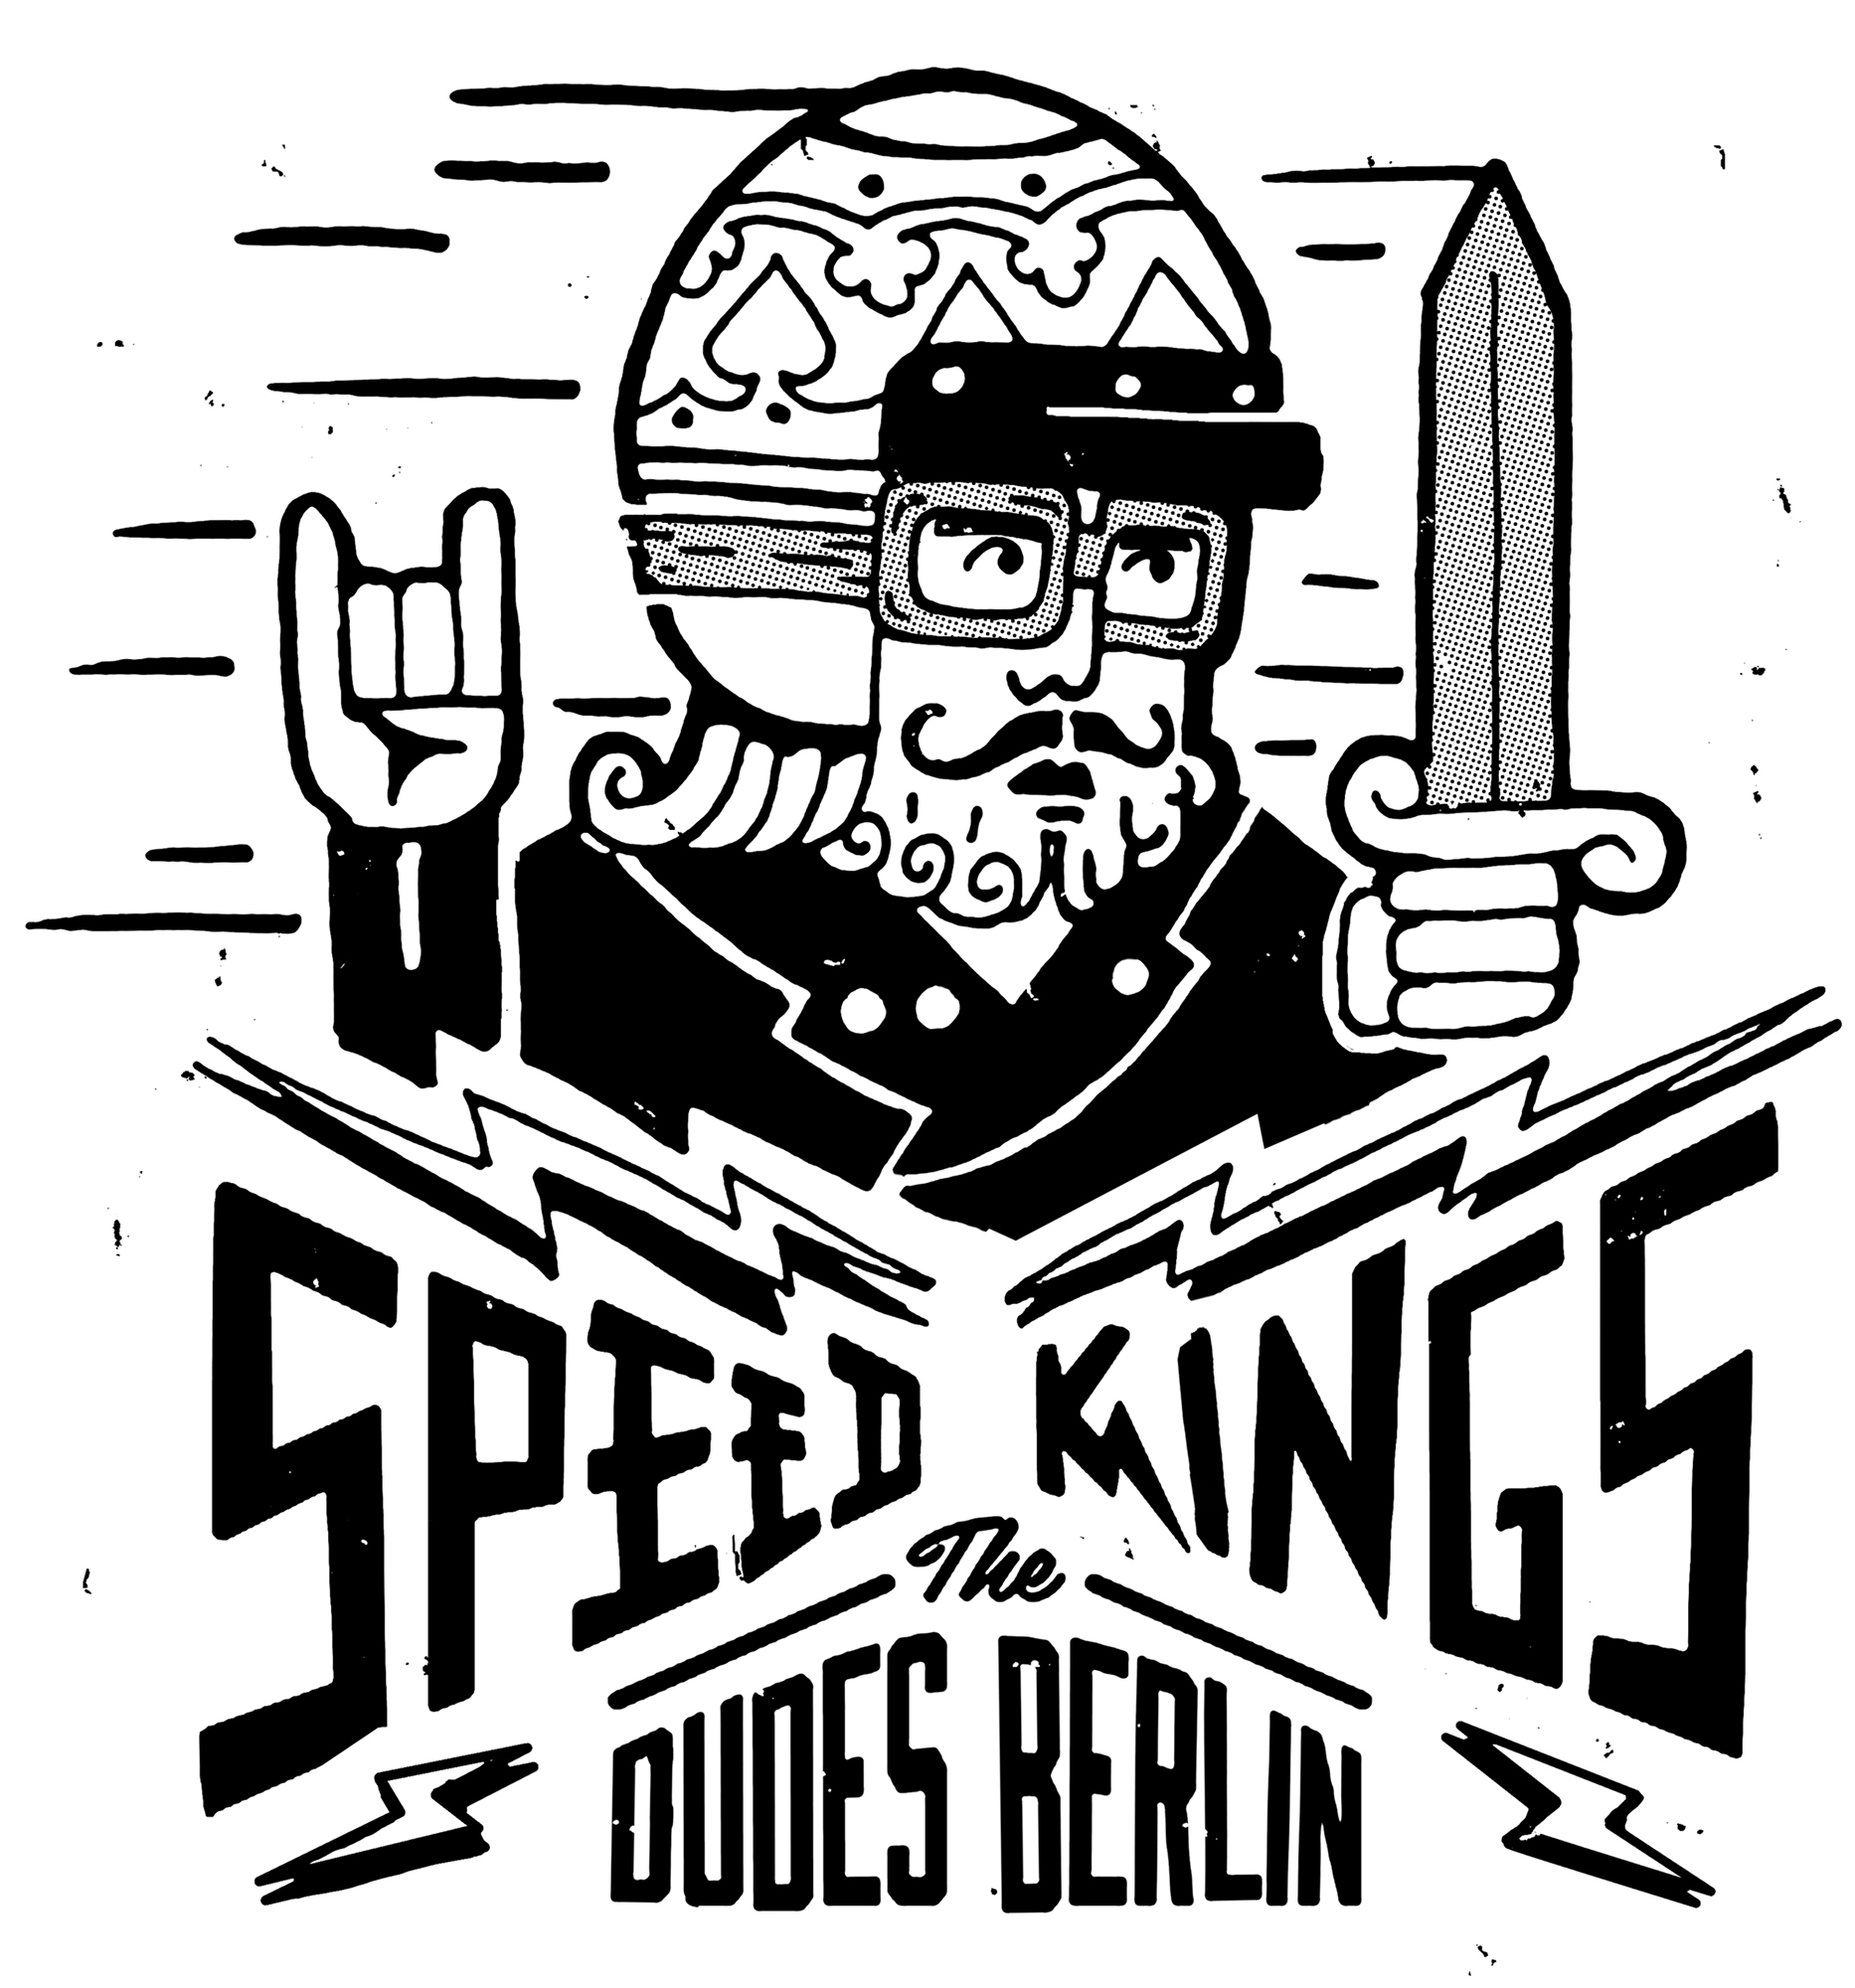 SPEED-KINGS